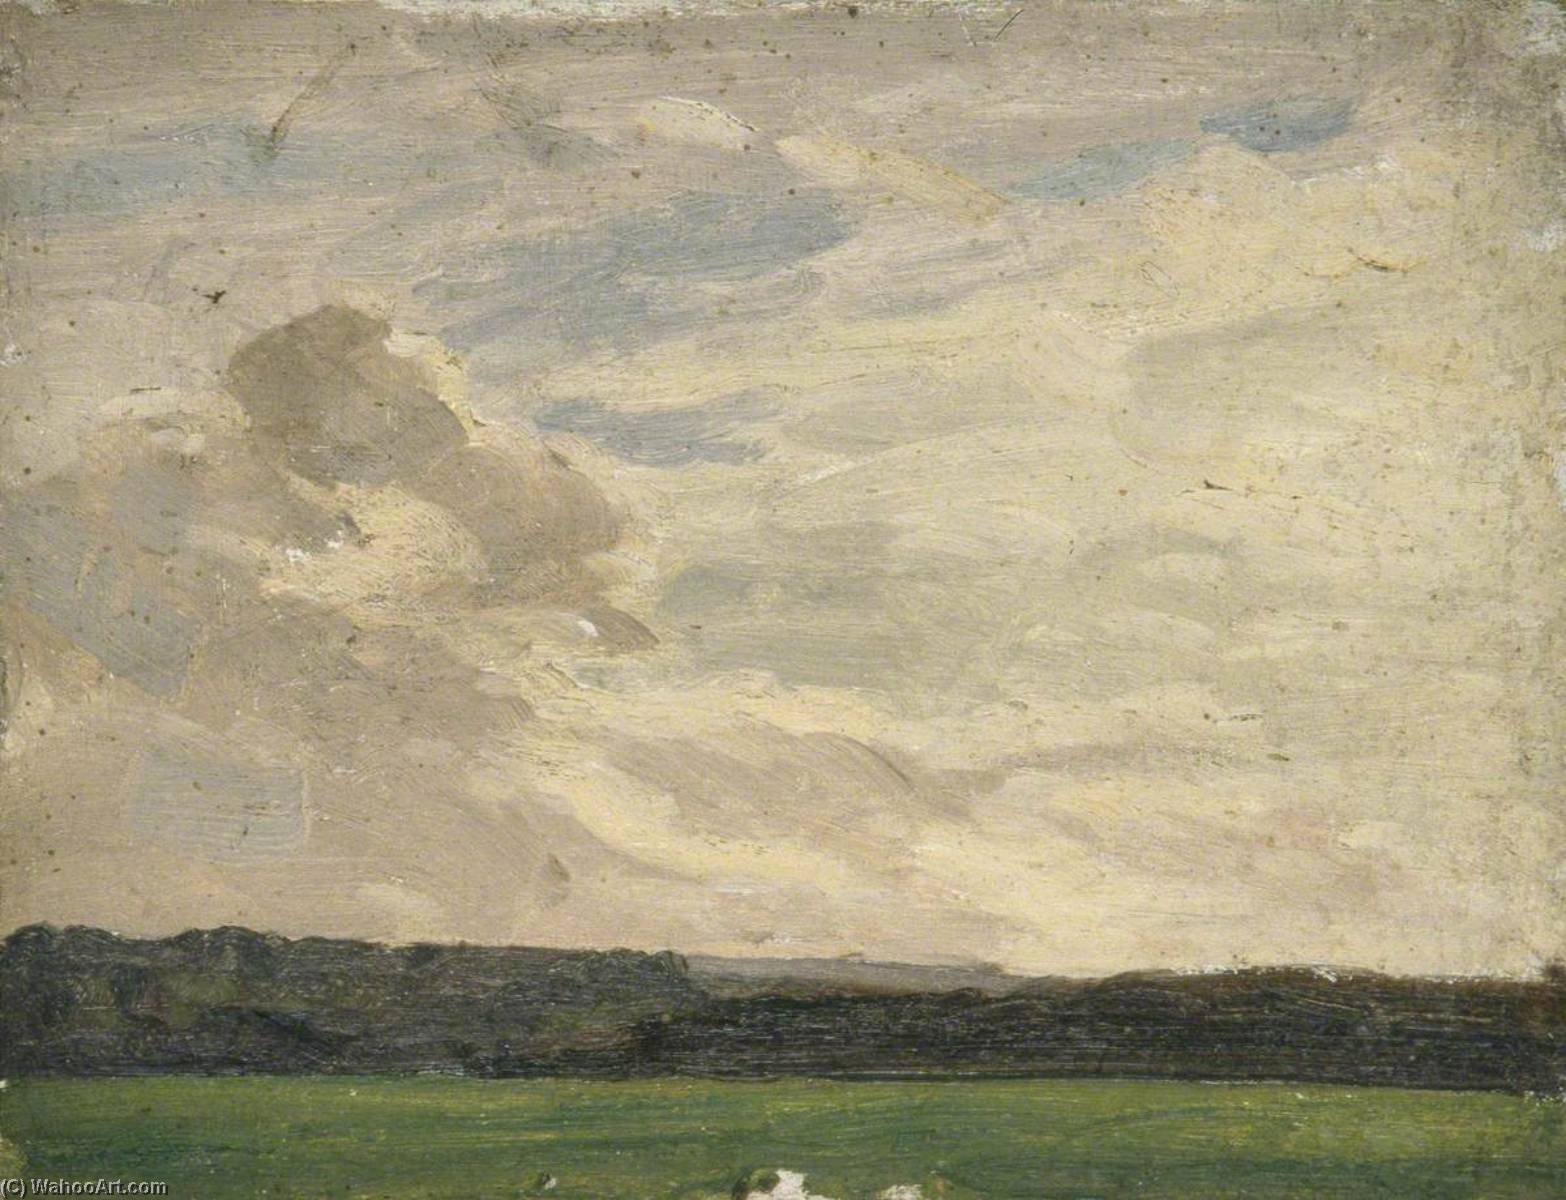 View across a Field, Oil by Gunning King